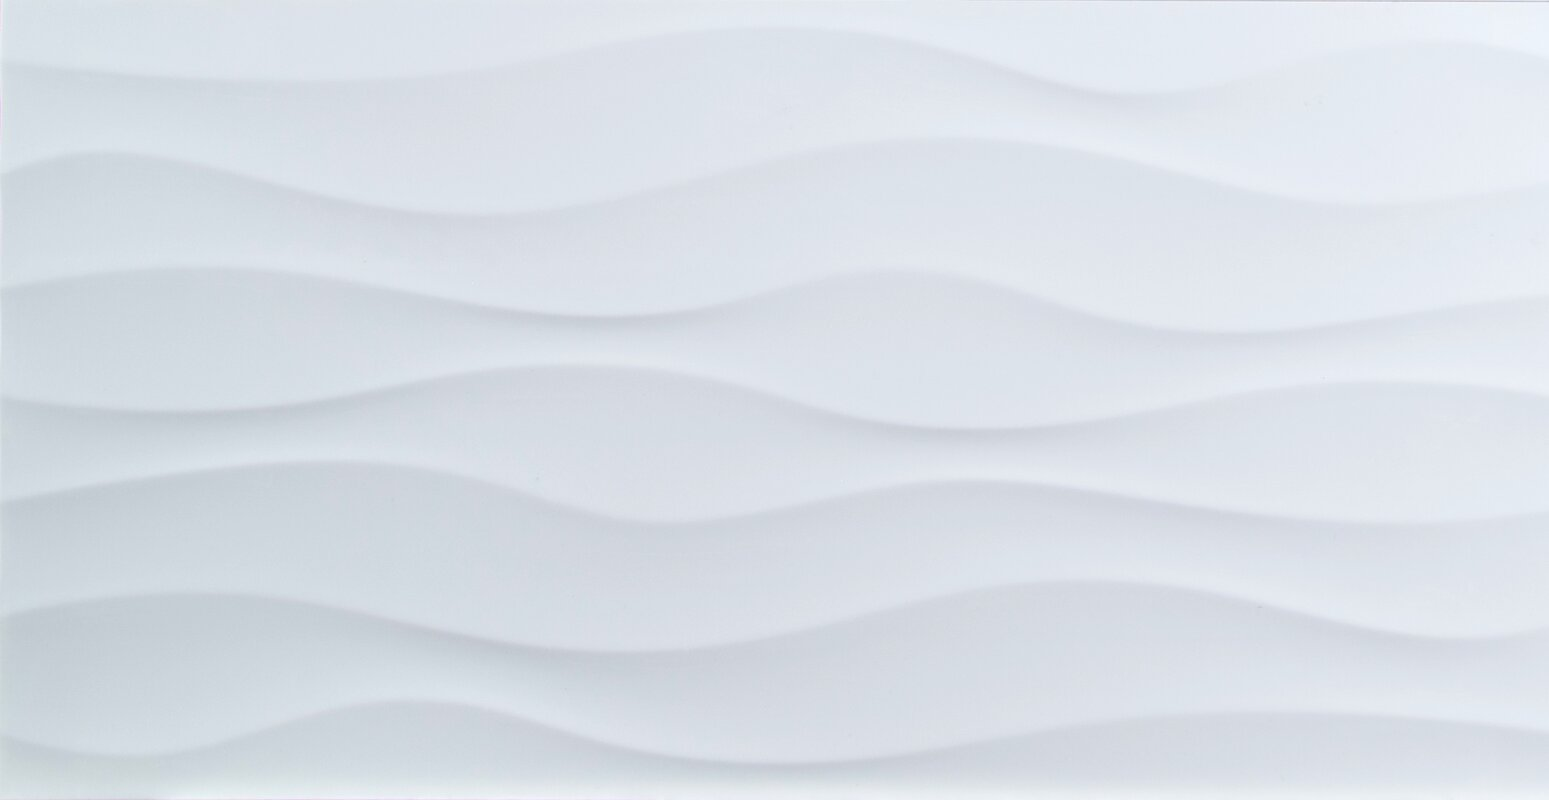 Msi dymo wavy 12 x 24 ceramic field tile in white reviews wayfair dymo wavy 12 x 24 ceramic field tile dailygadgetfo Image collections